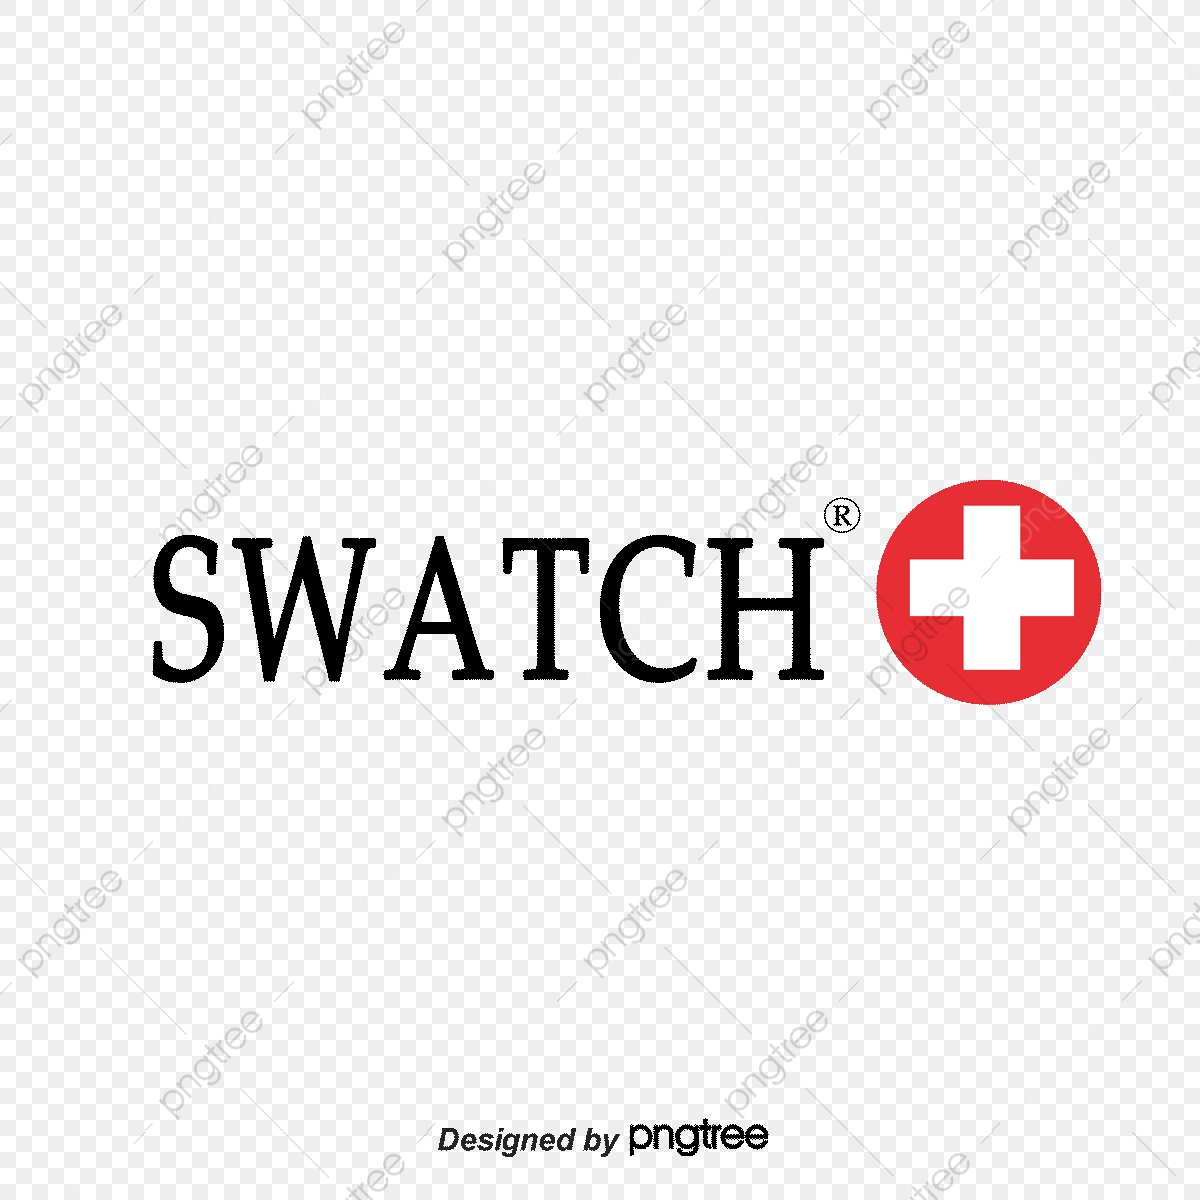 Swatch Watches Logo Watch Lists Logo Png Transparent Clipart Image And Psd File For Free Download